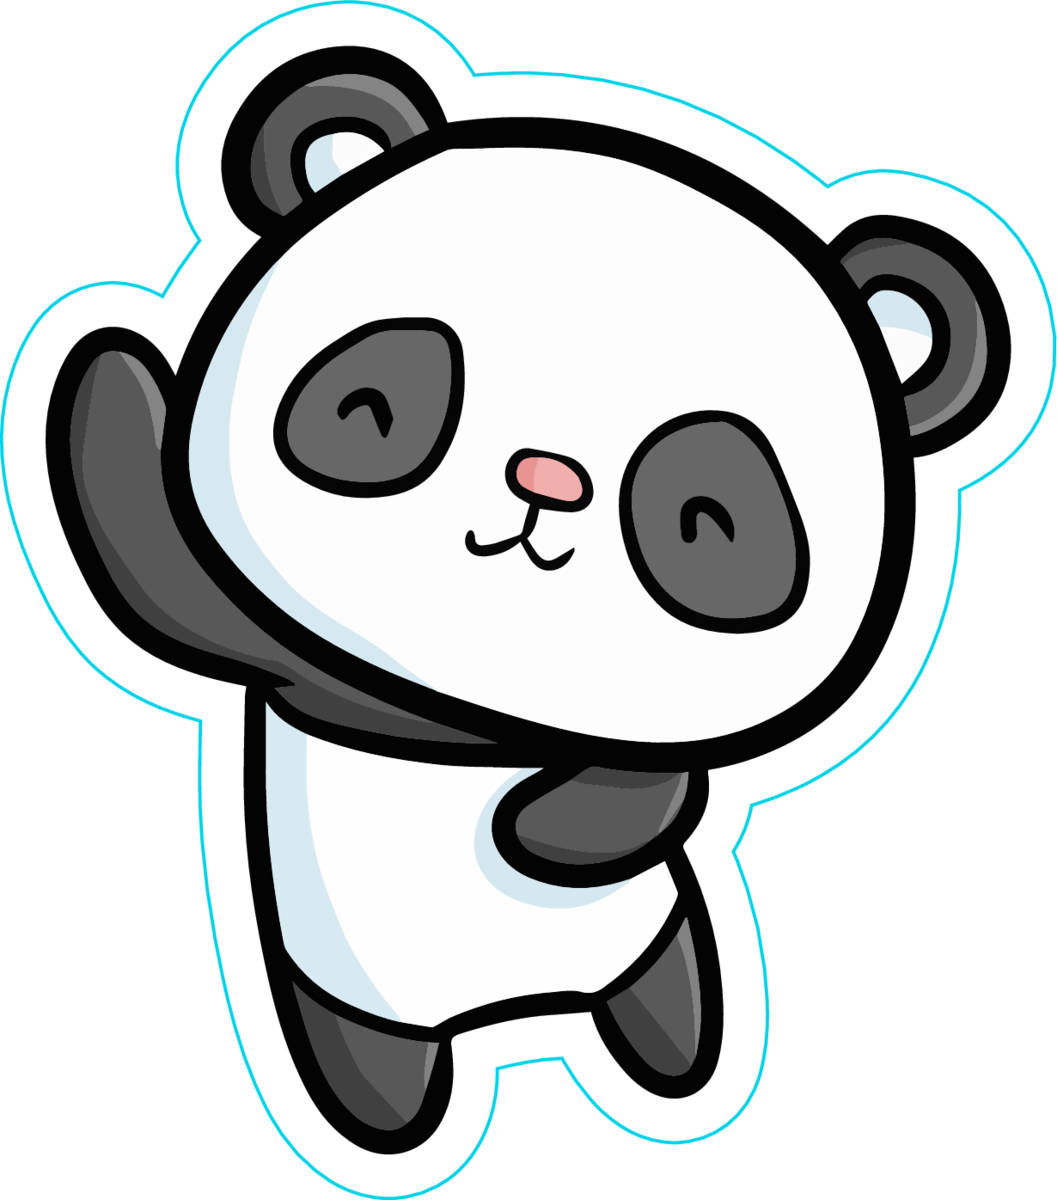 Cute dancing panda sticker